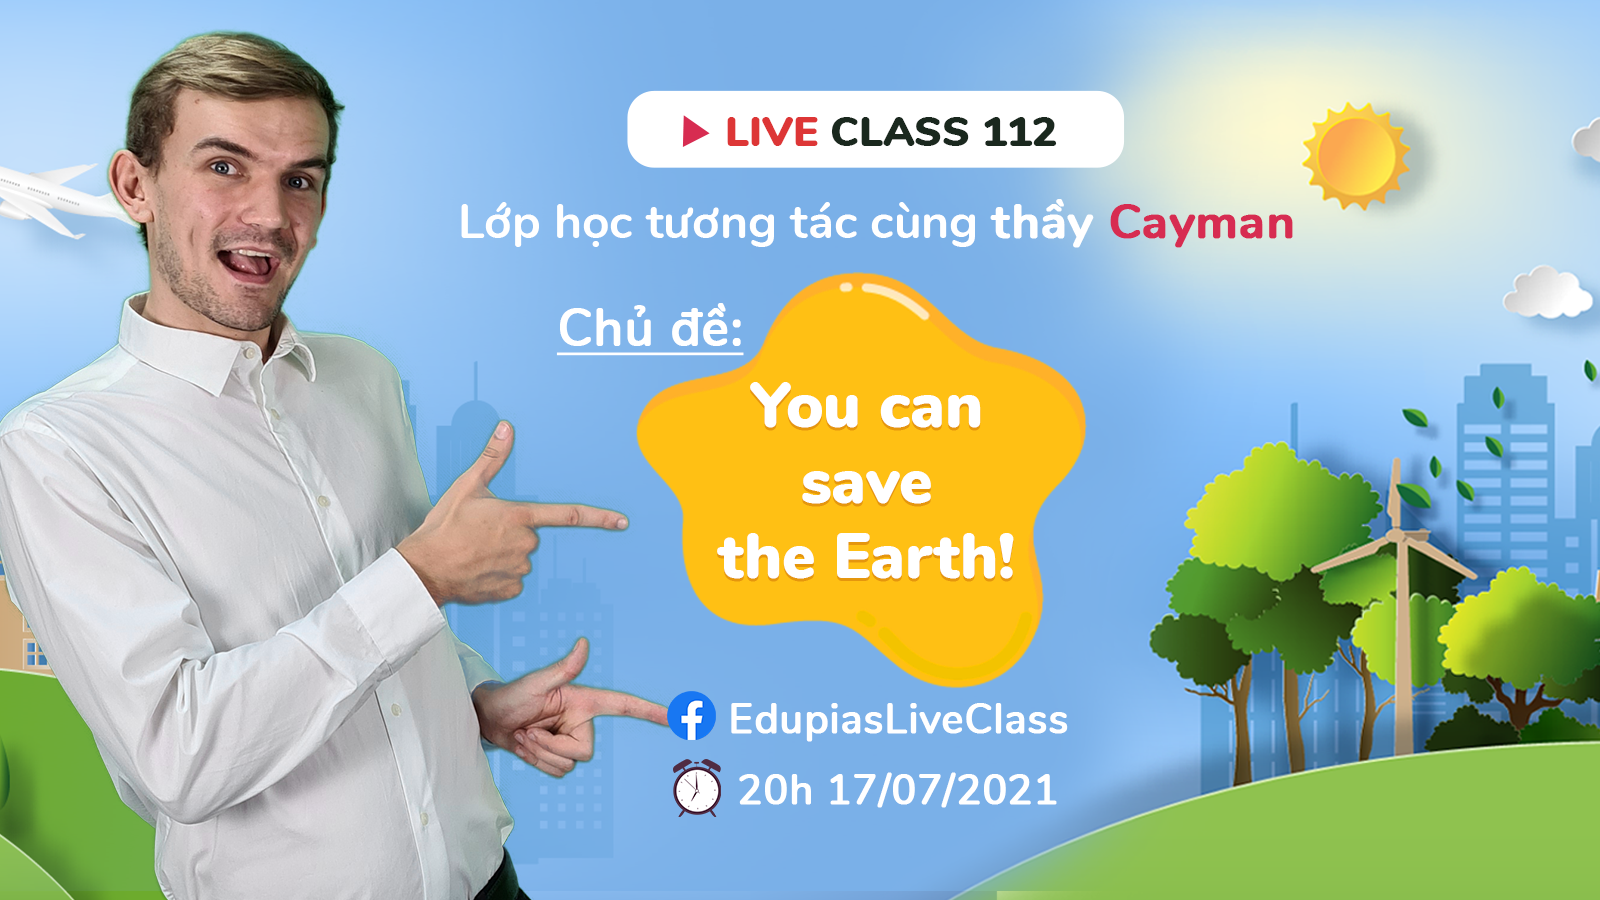 Live class tuần 112 - Chủ đề: You can save the Earth!